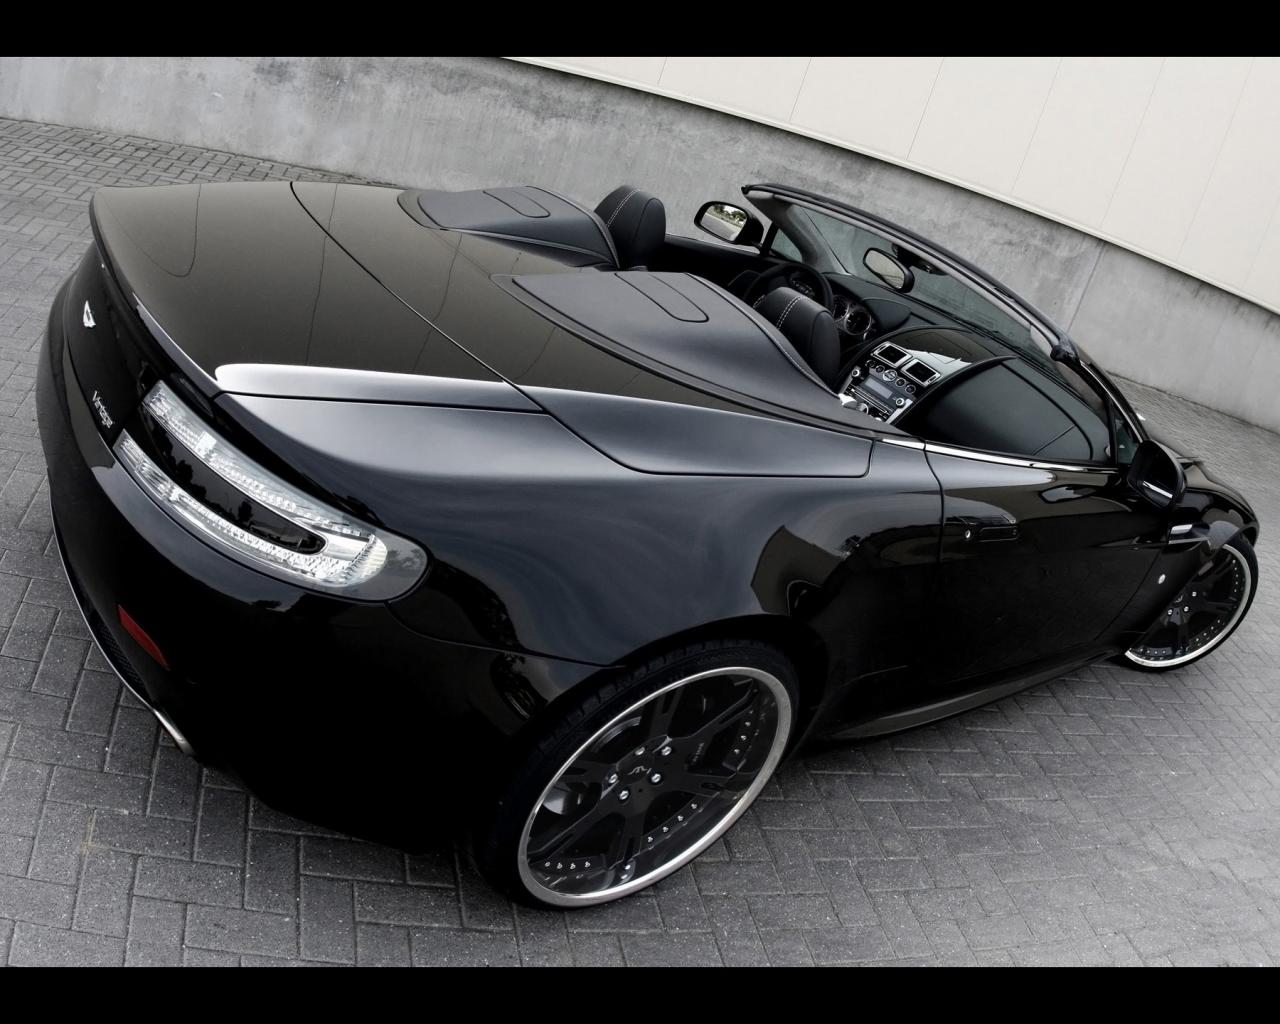 Aston, martin, Vantage, V8, back, side 1280x1024